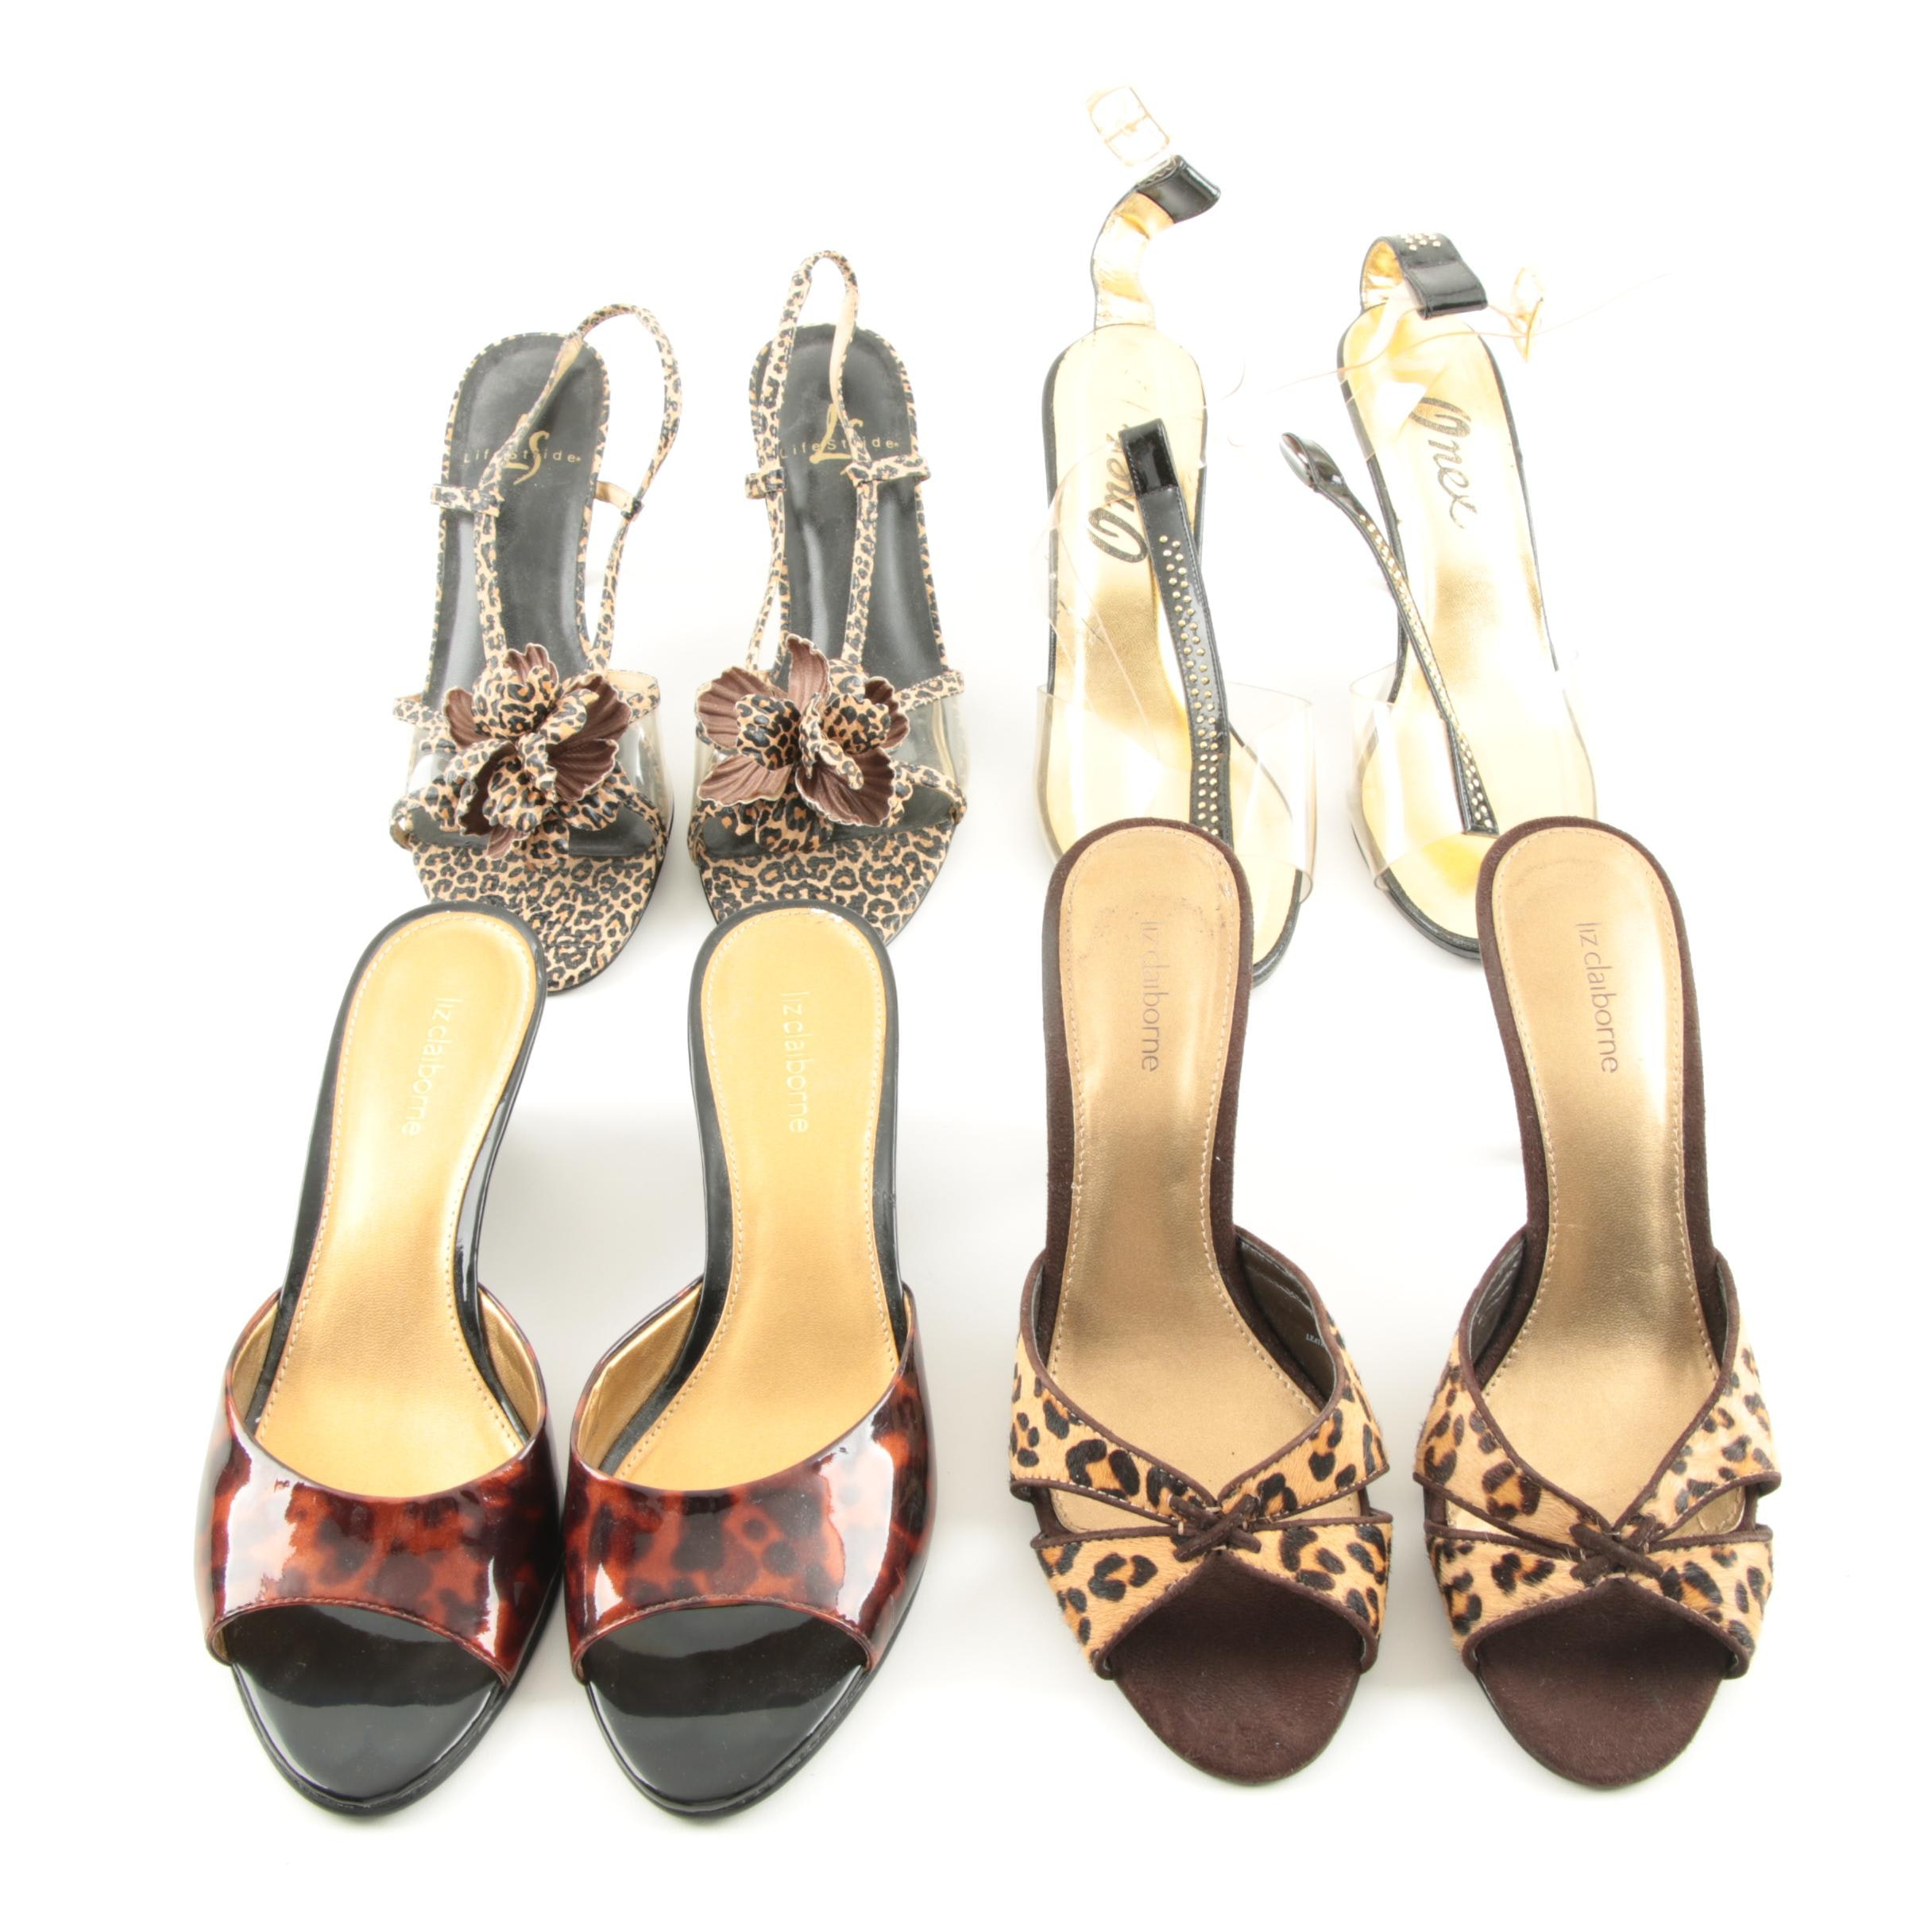 Women's High Heels, Including Liz Claiborne